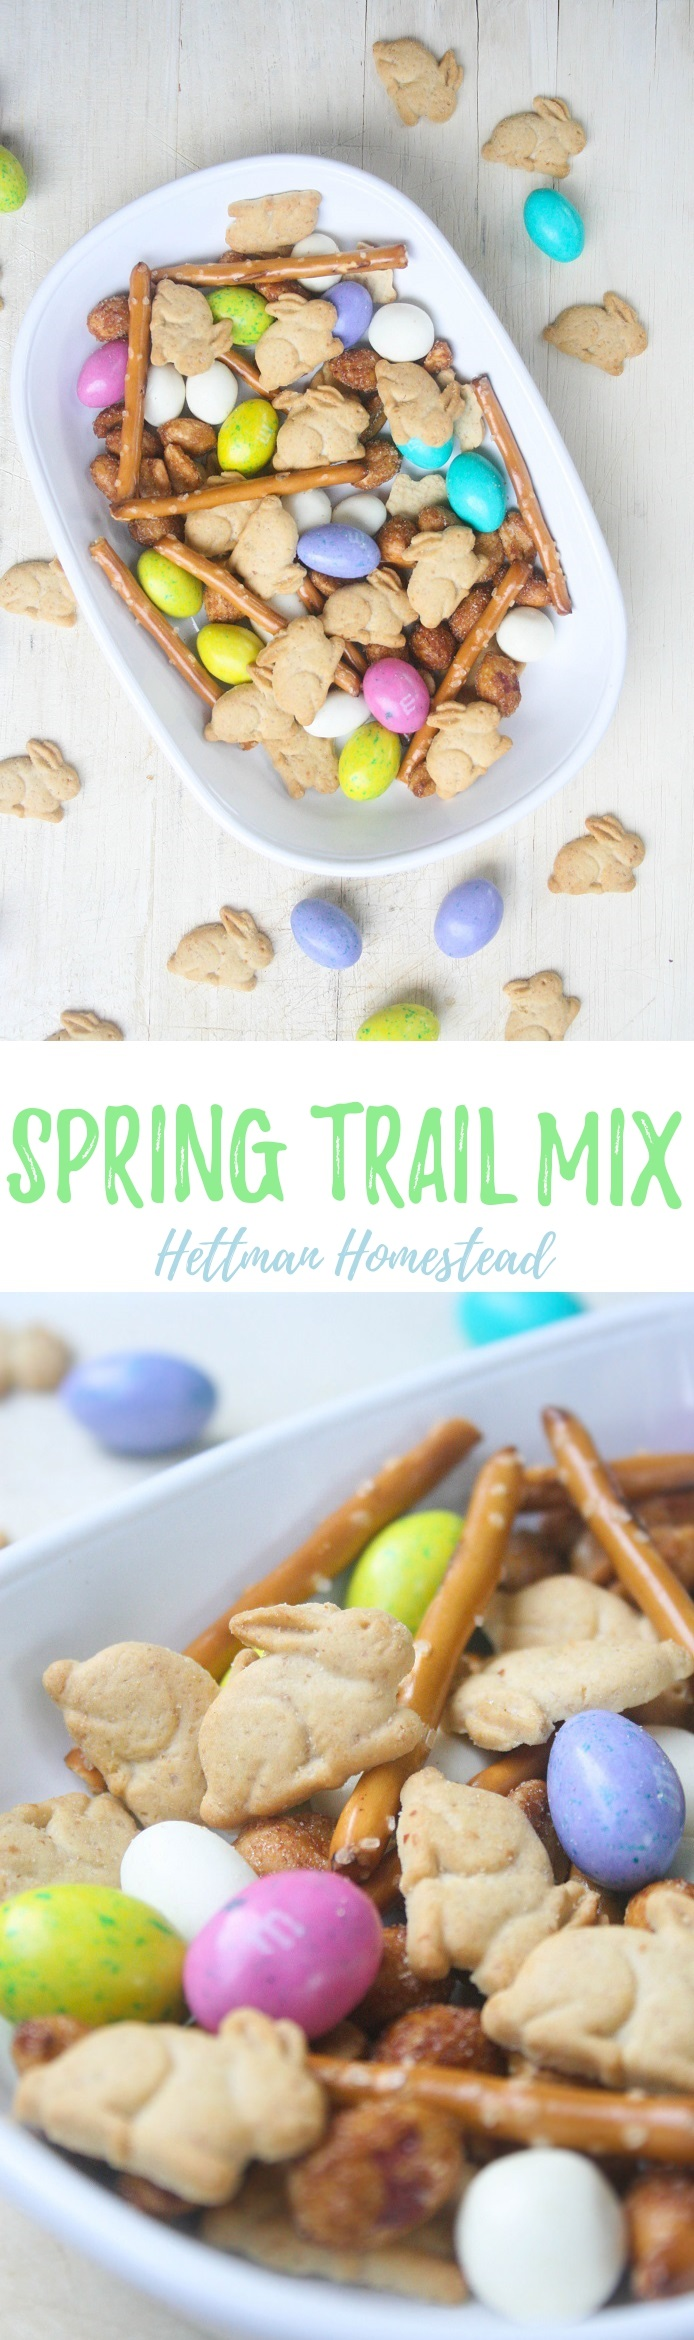 spring trail mix.jpg